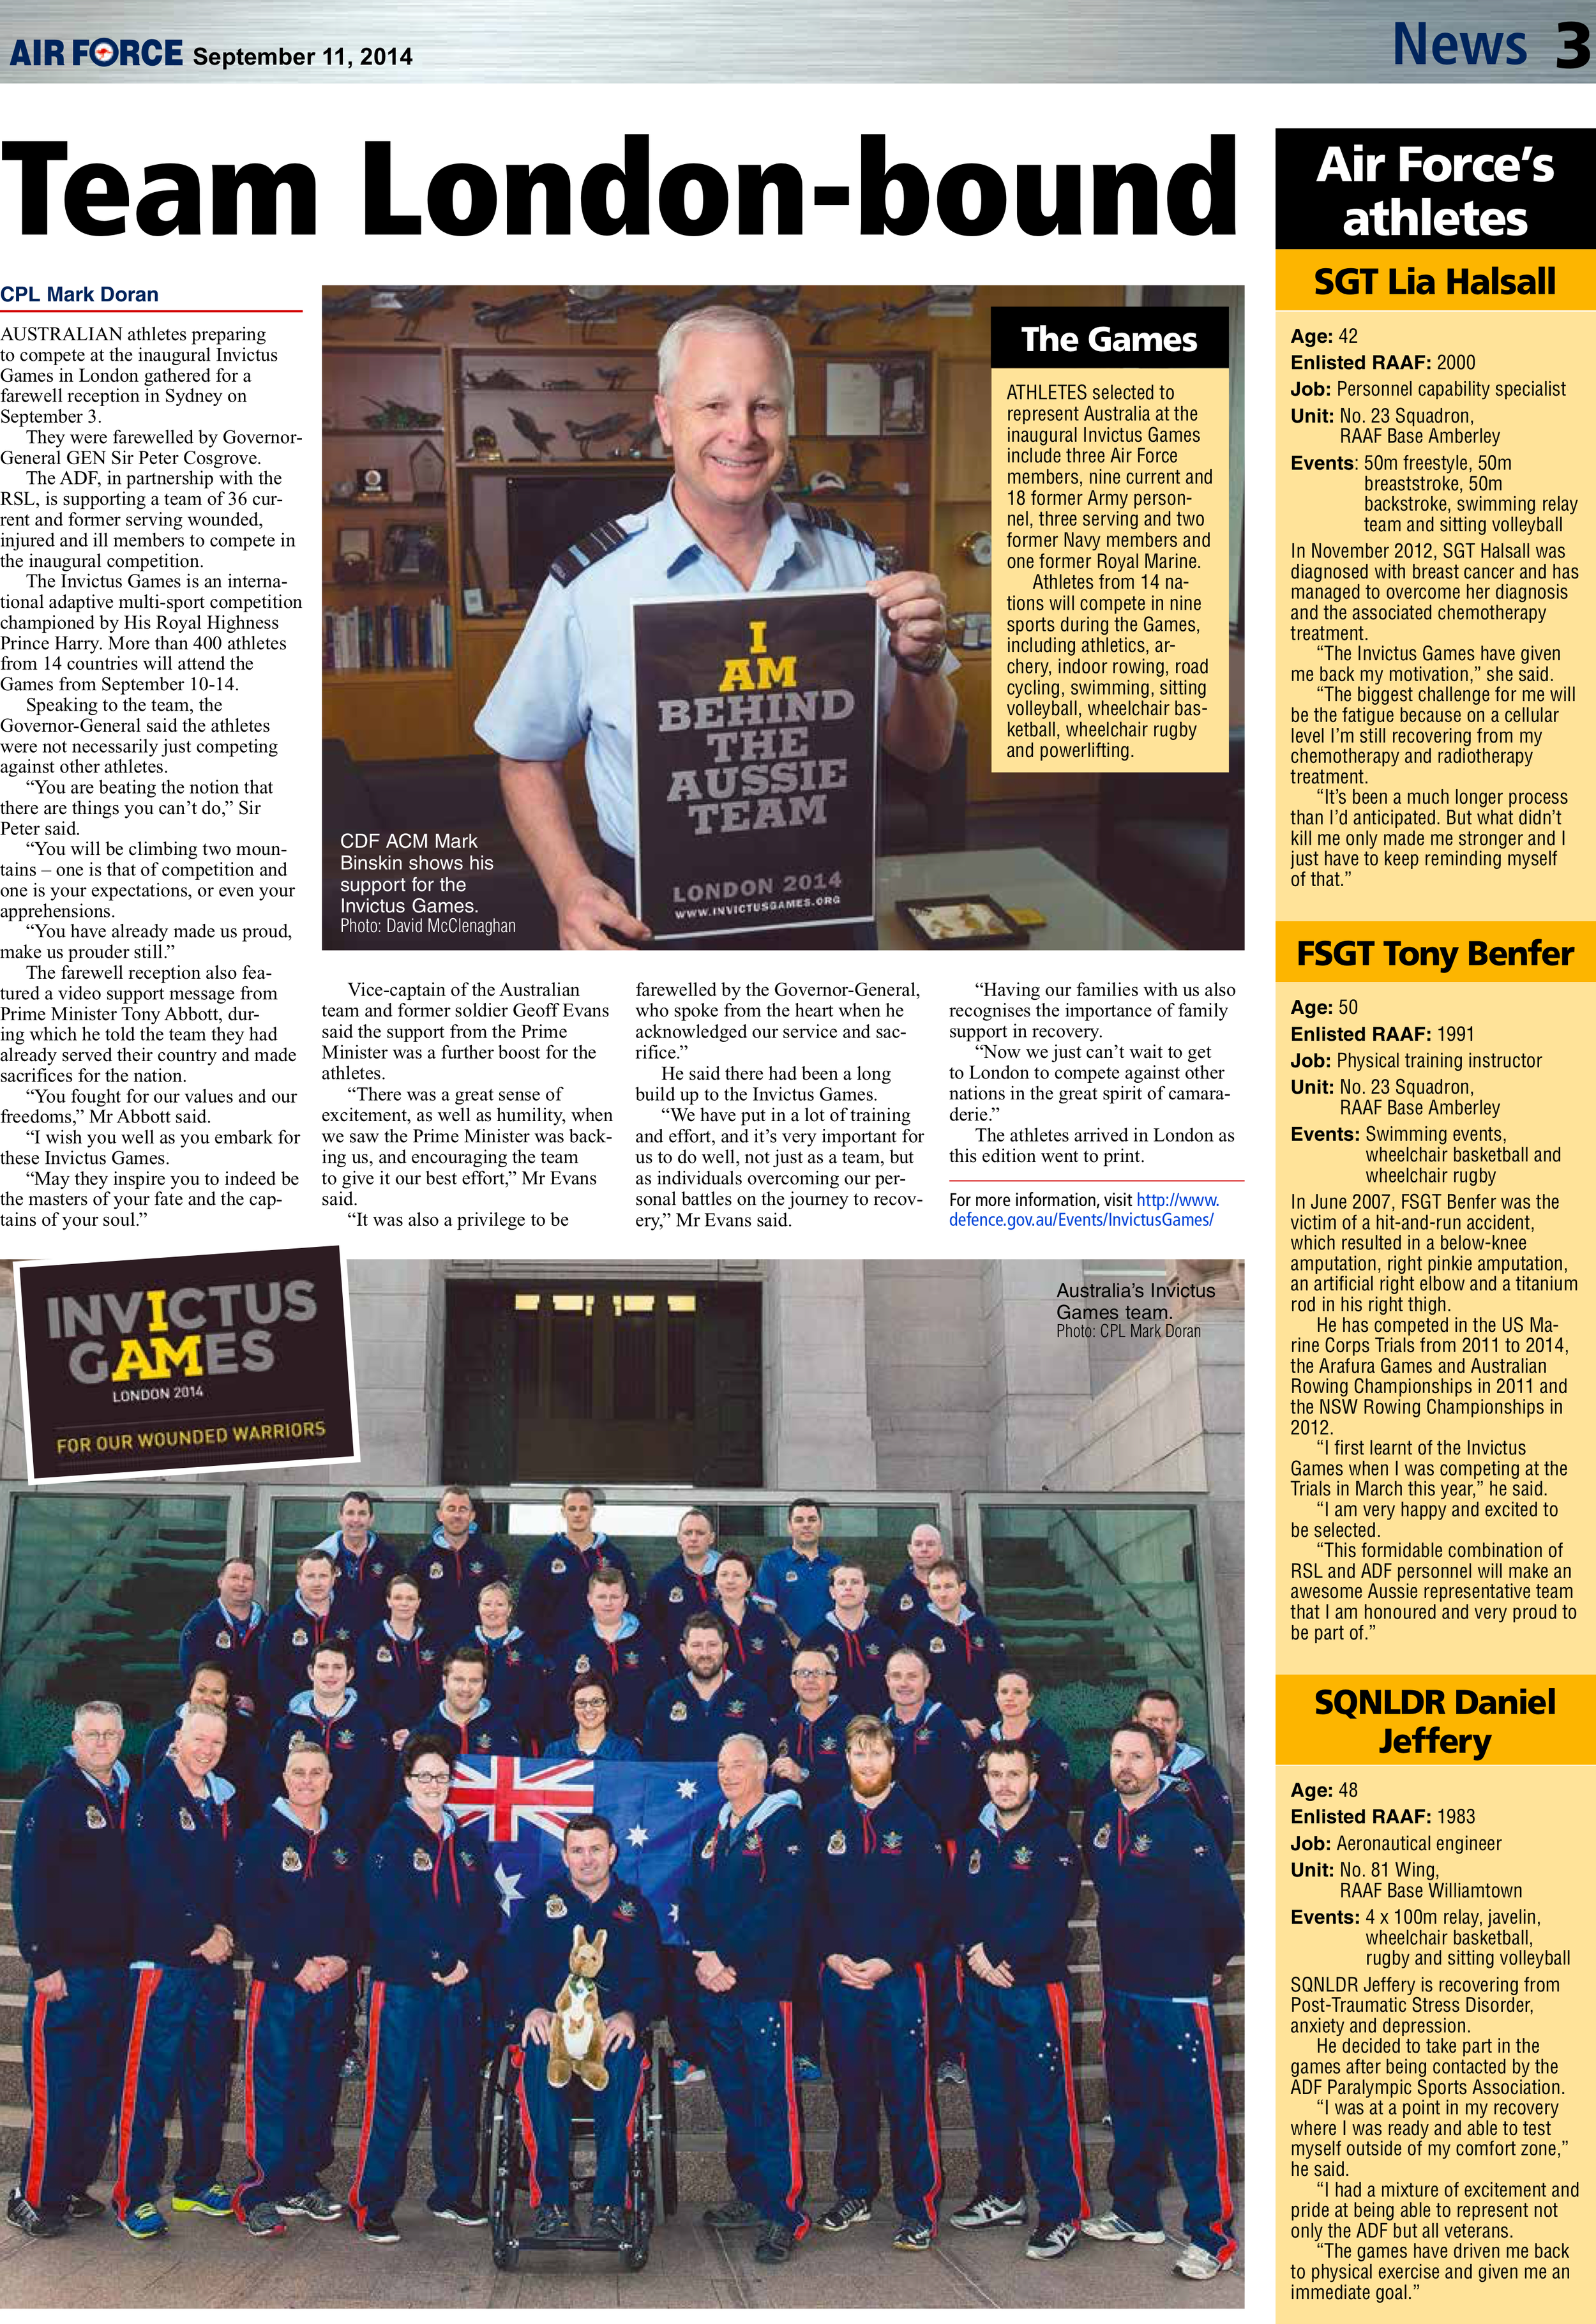 air-force-news-invictus-games-11-september-2014.png